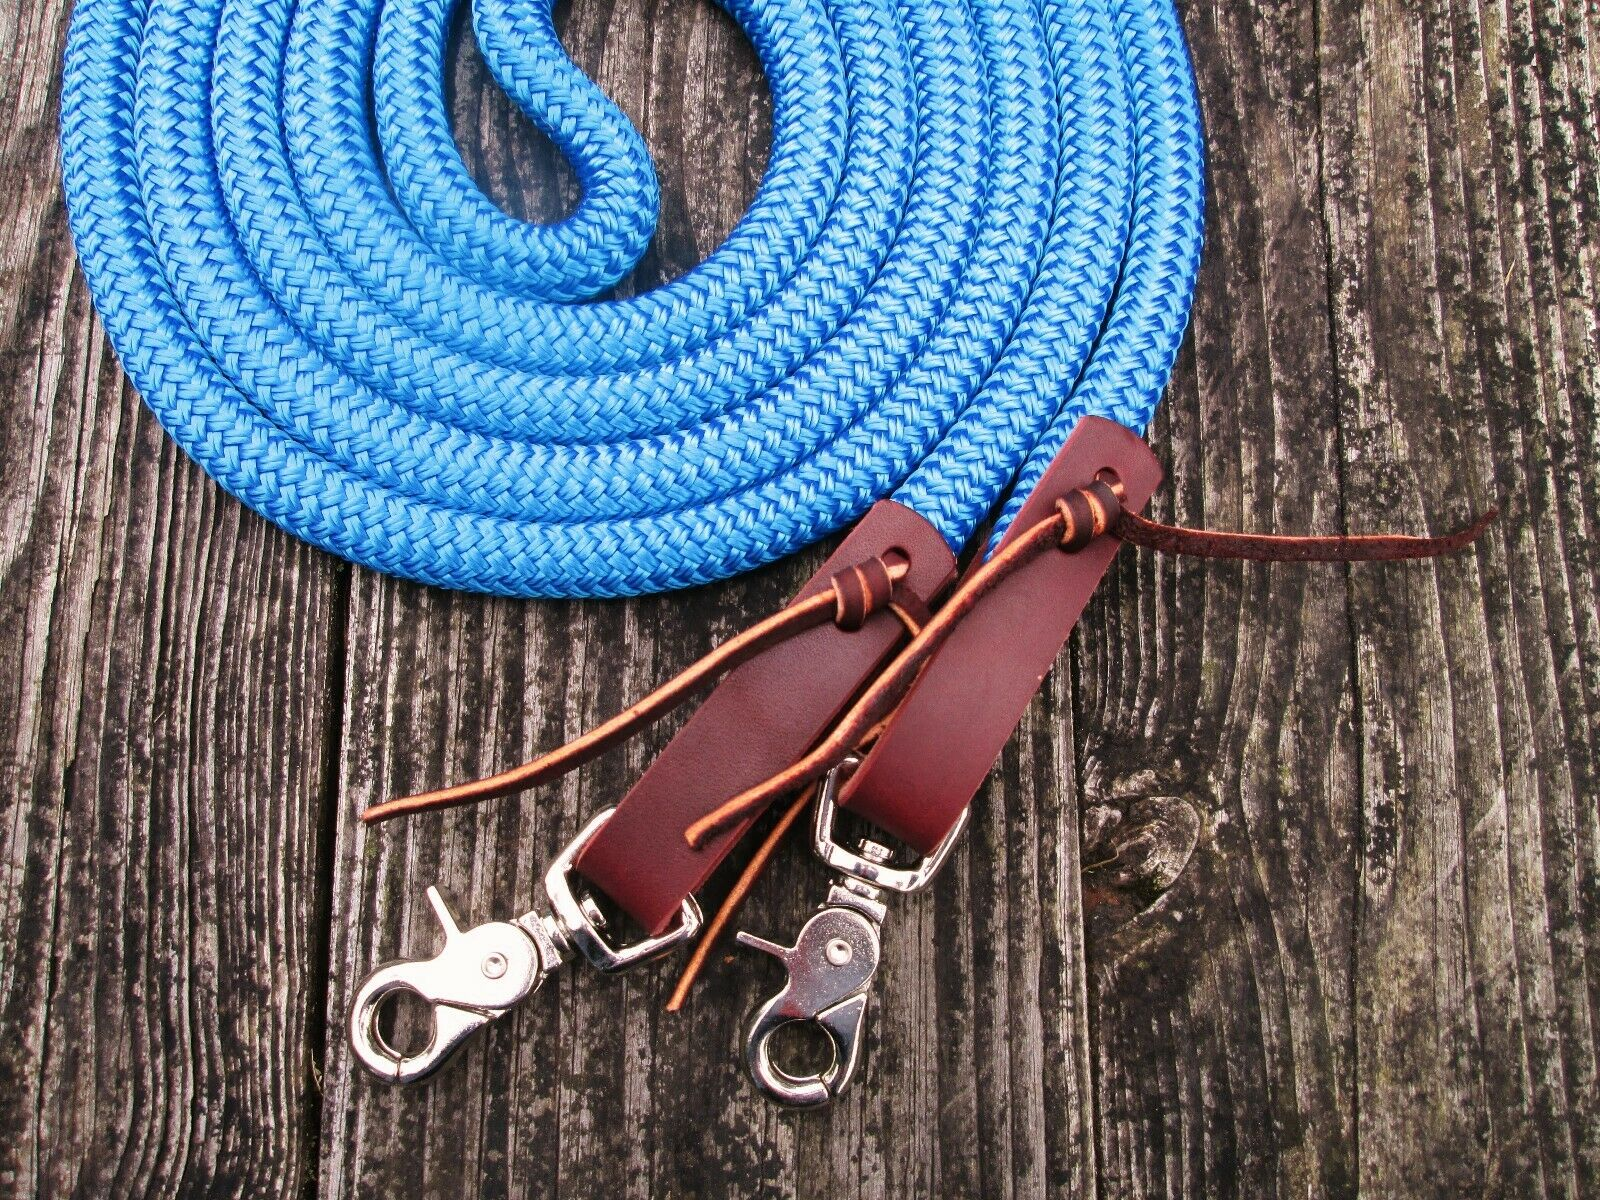 blueE Yacht Rope  Loop Reins Leathers Snaps 12' x 9 16  Trail Training Draft Horse  deals sale